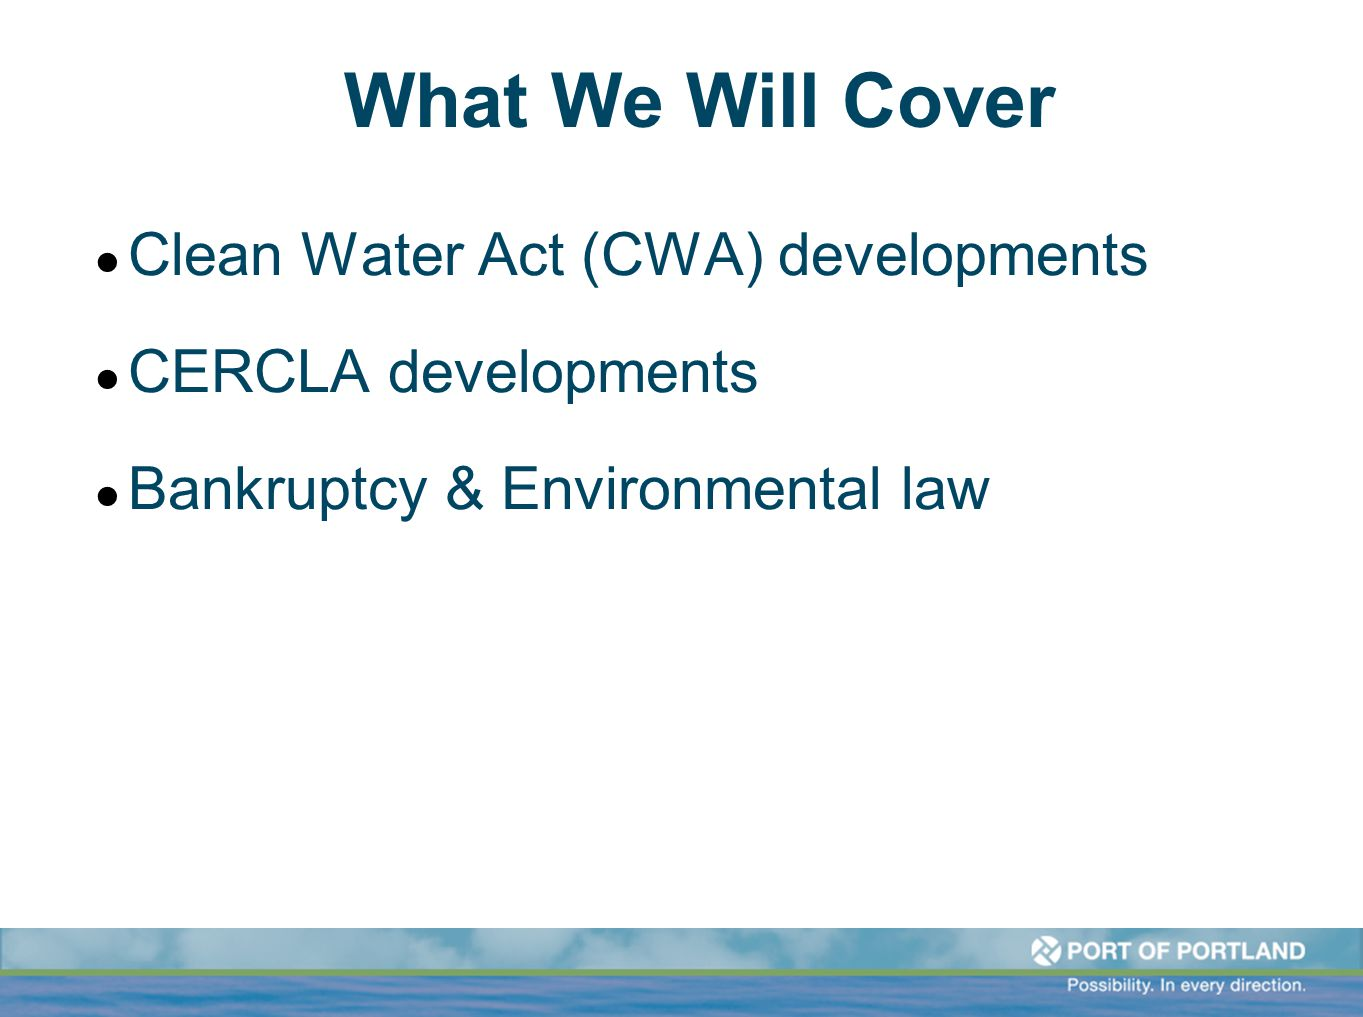 What We Will Cover ●C●Clean Water Act (CWA) developments ●C●CERCLA developments ●B●Bankruptcy & Environmental law